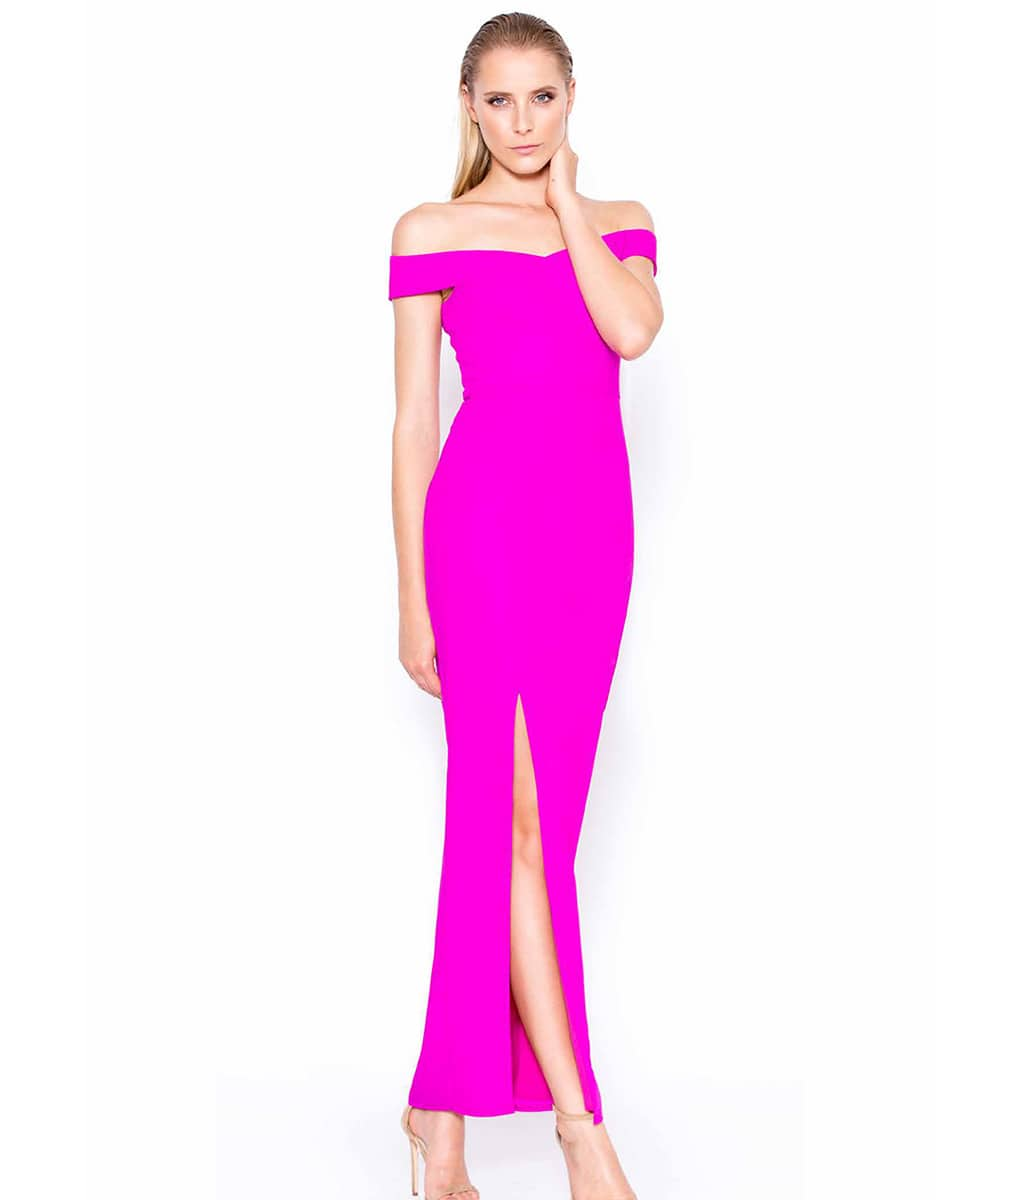 Alila-Bright-Purple-Off-the-Shoulder-Maxi-Dress-Lumier-Bariano